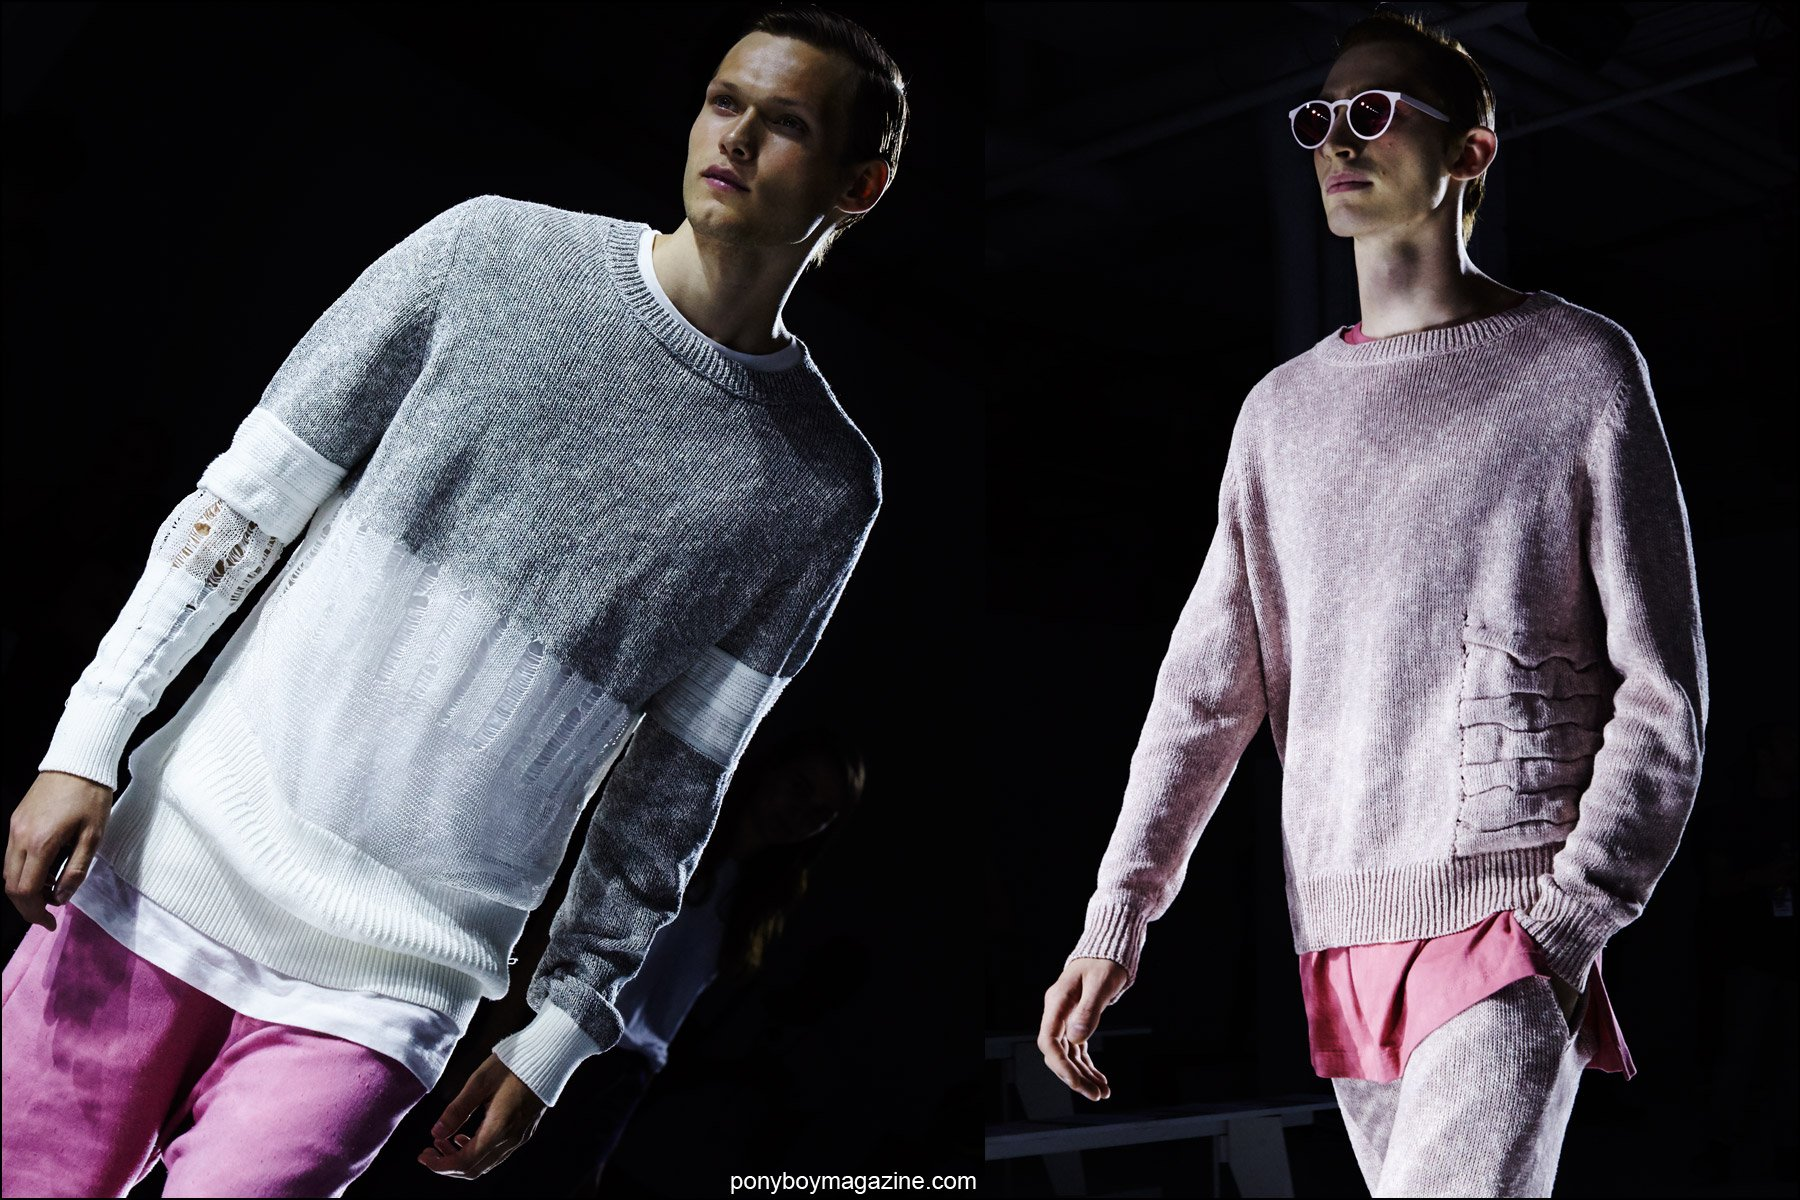 Incredible knitwear by Rochambeau menswear, for Spring/Summer 2016. Photographed by Alexander Thompson for Ponyboy magazine NY.